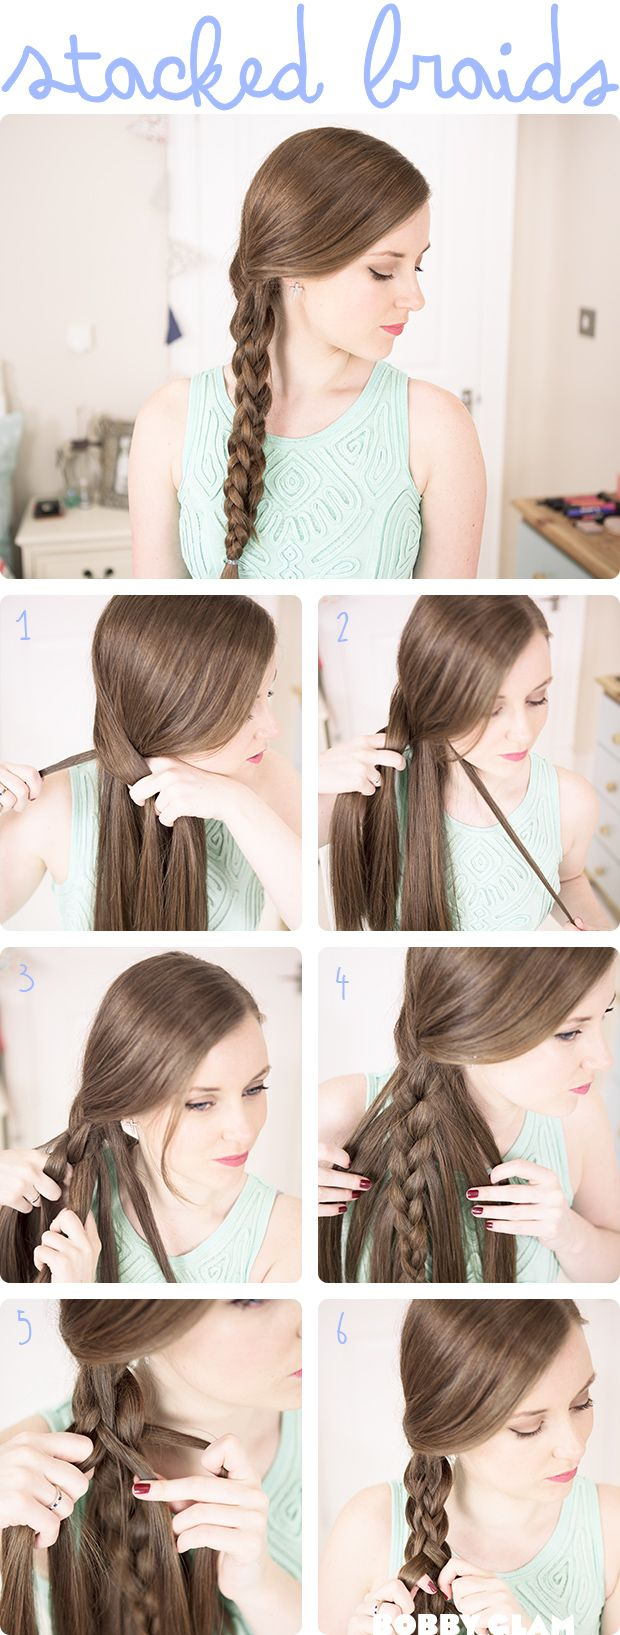 Magnificent 1000 Images About Cute Hair Tricks On Pinterest Short Hairstyles Gunalazisus